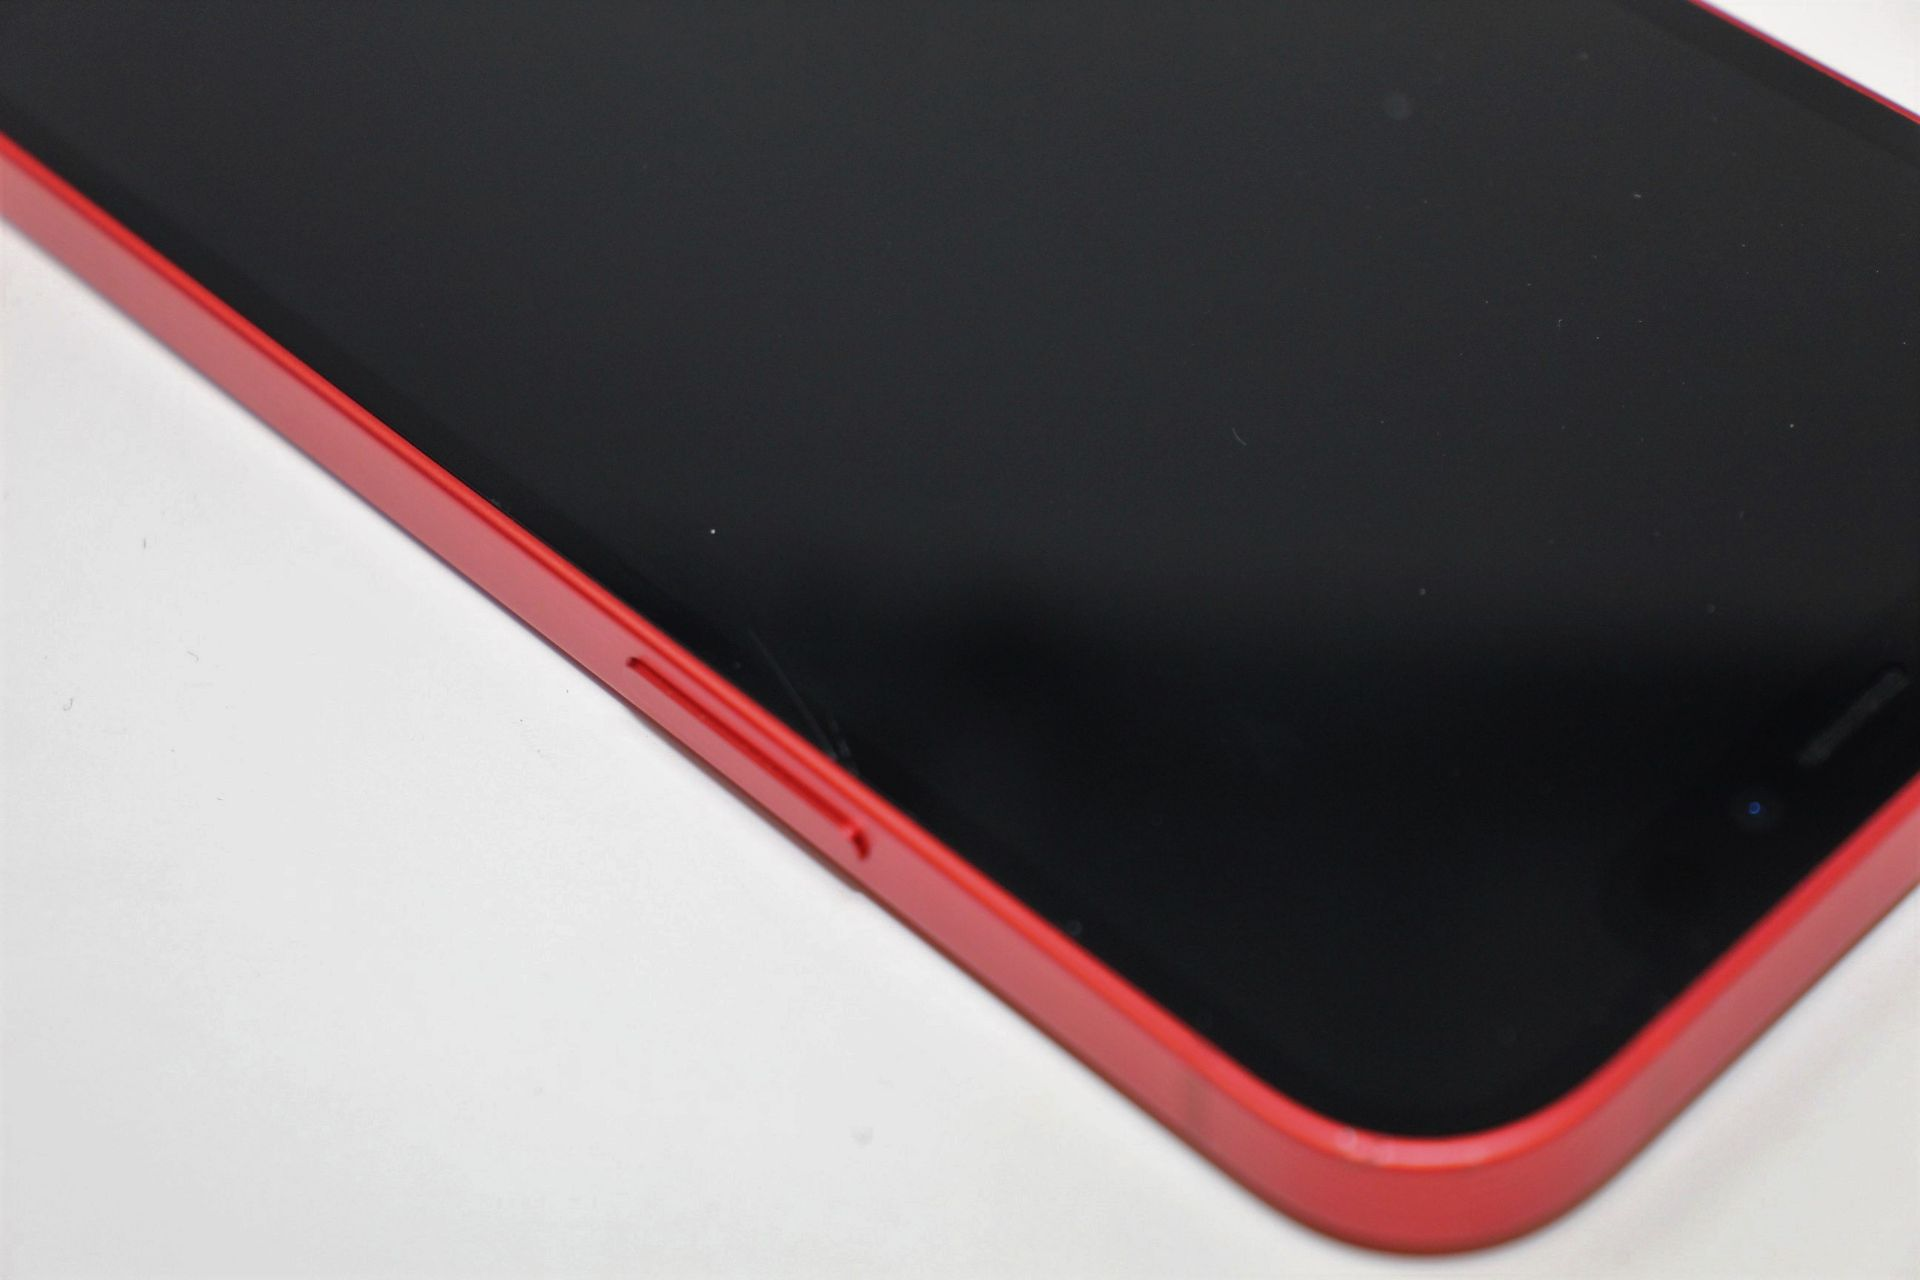 A pre-owned Apple iPhone 12 (Global/A2403) 128GB in Red (FRP clear. Some scratches to screen glass - Image 10 of 16